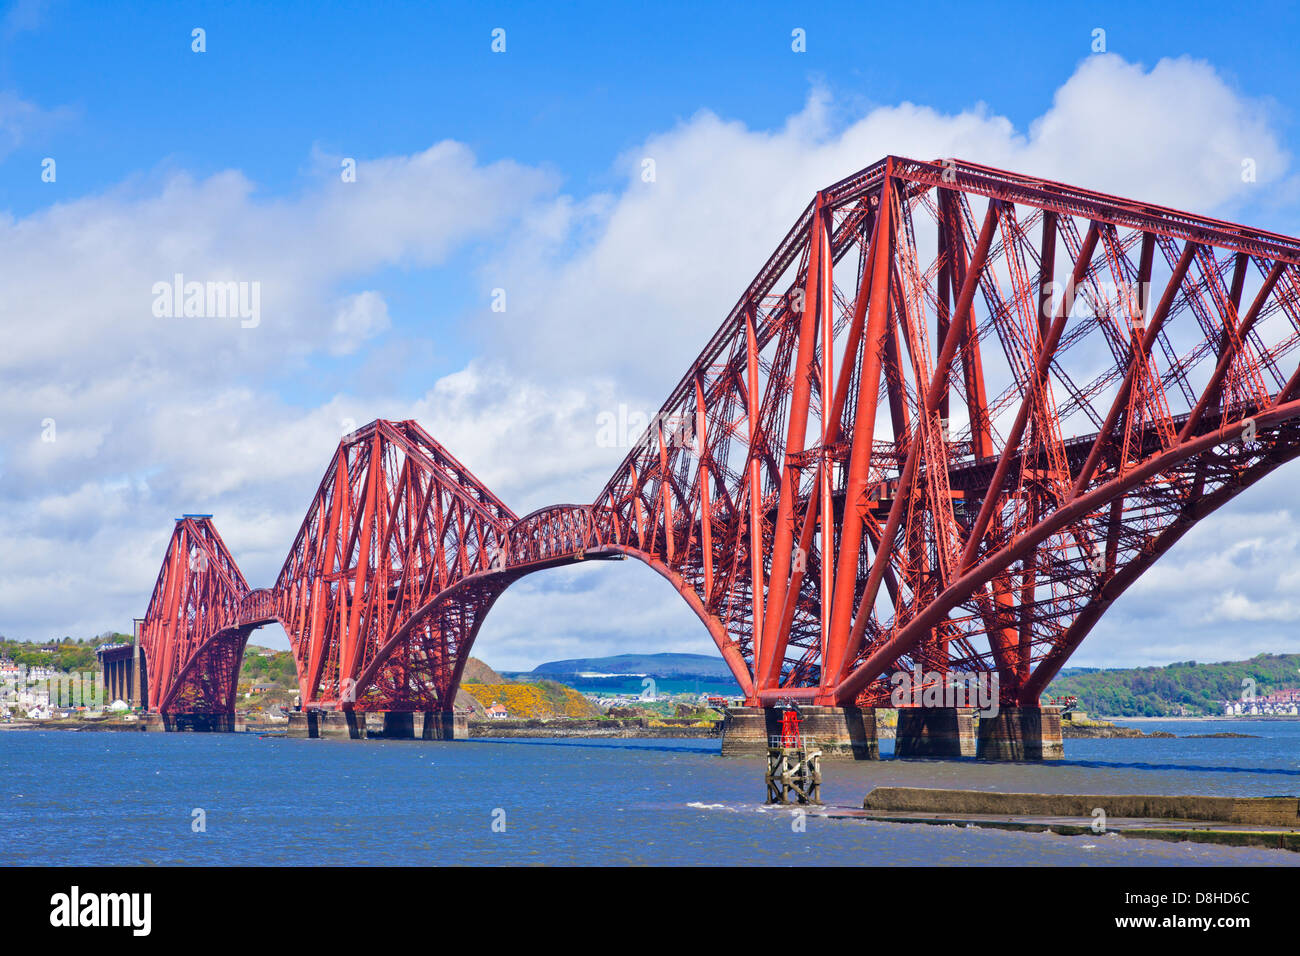 Die Forth Rail Bridge am South Queensferry in der Nähe von Edinburgh Lothian Schottland Großbritannien Stockbild